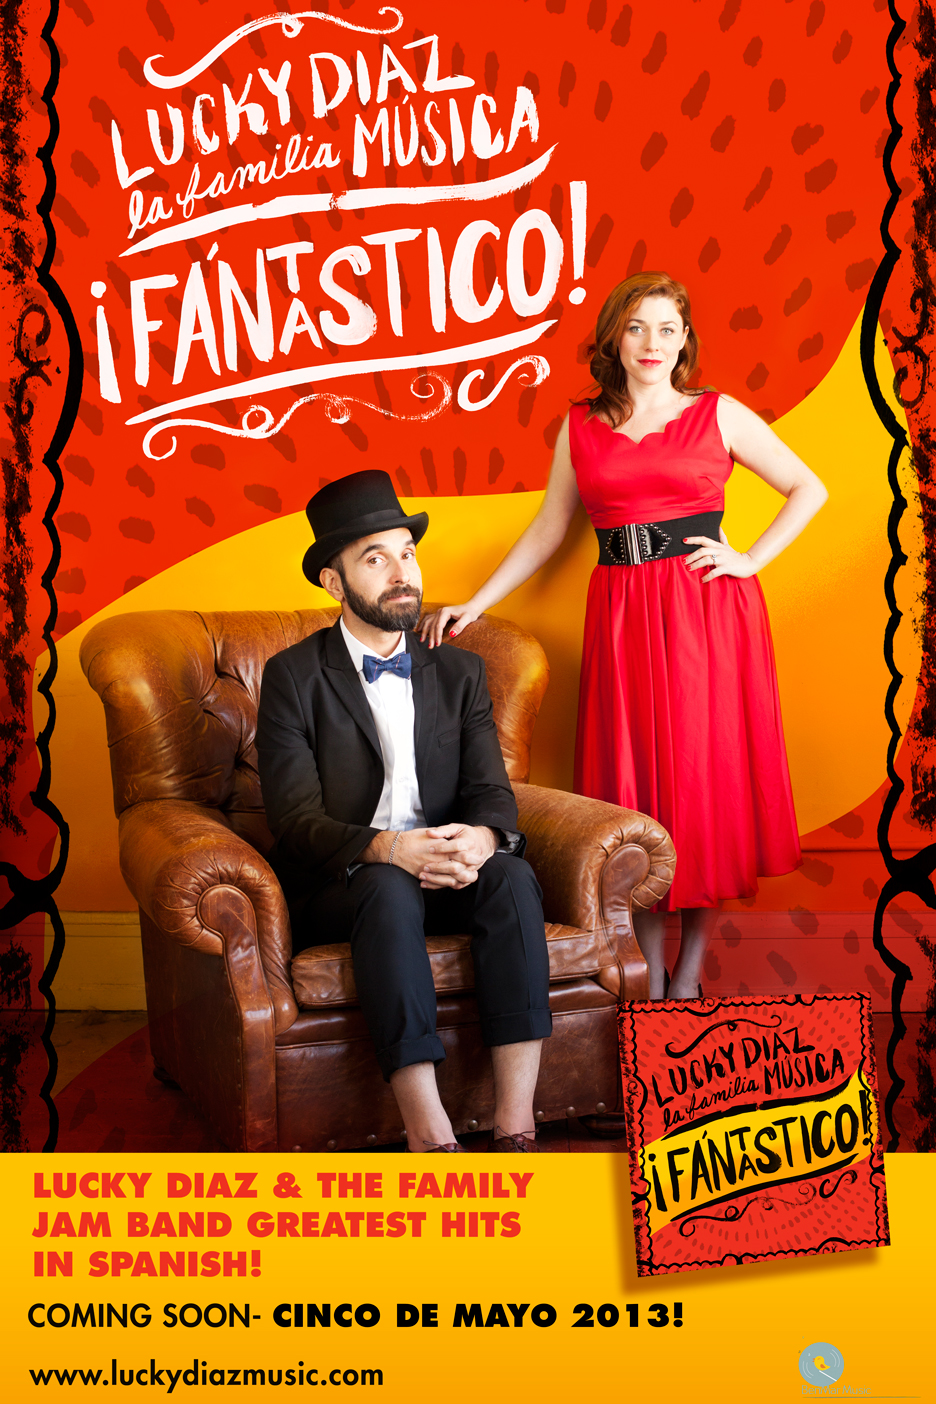 ¡Fantastico!- the new spanish album by Lucky Diaz and the Family Jam Band.Out May 5, 2013